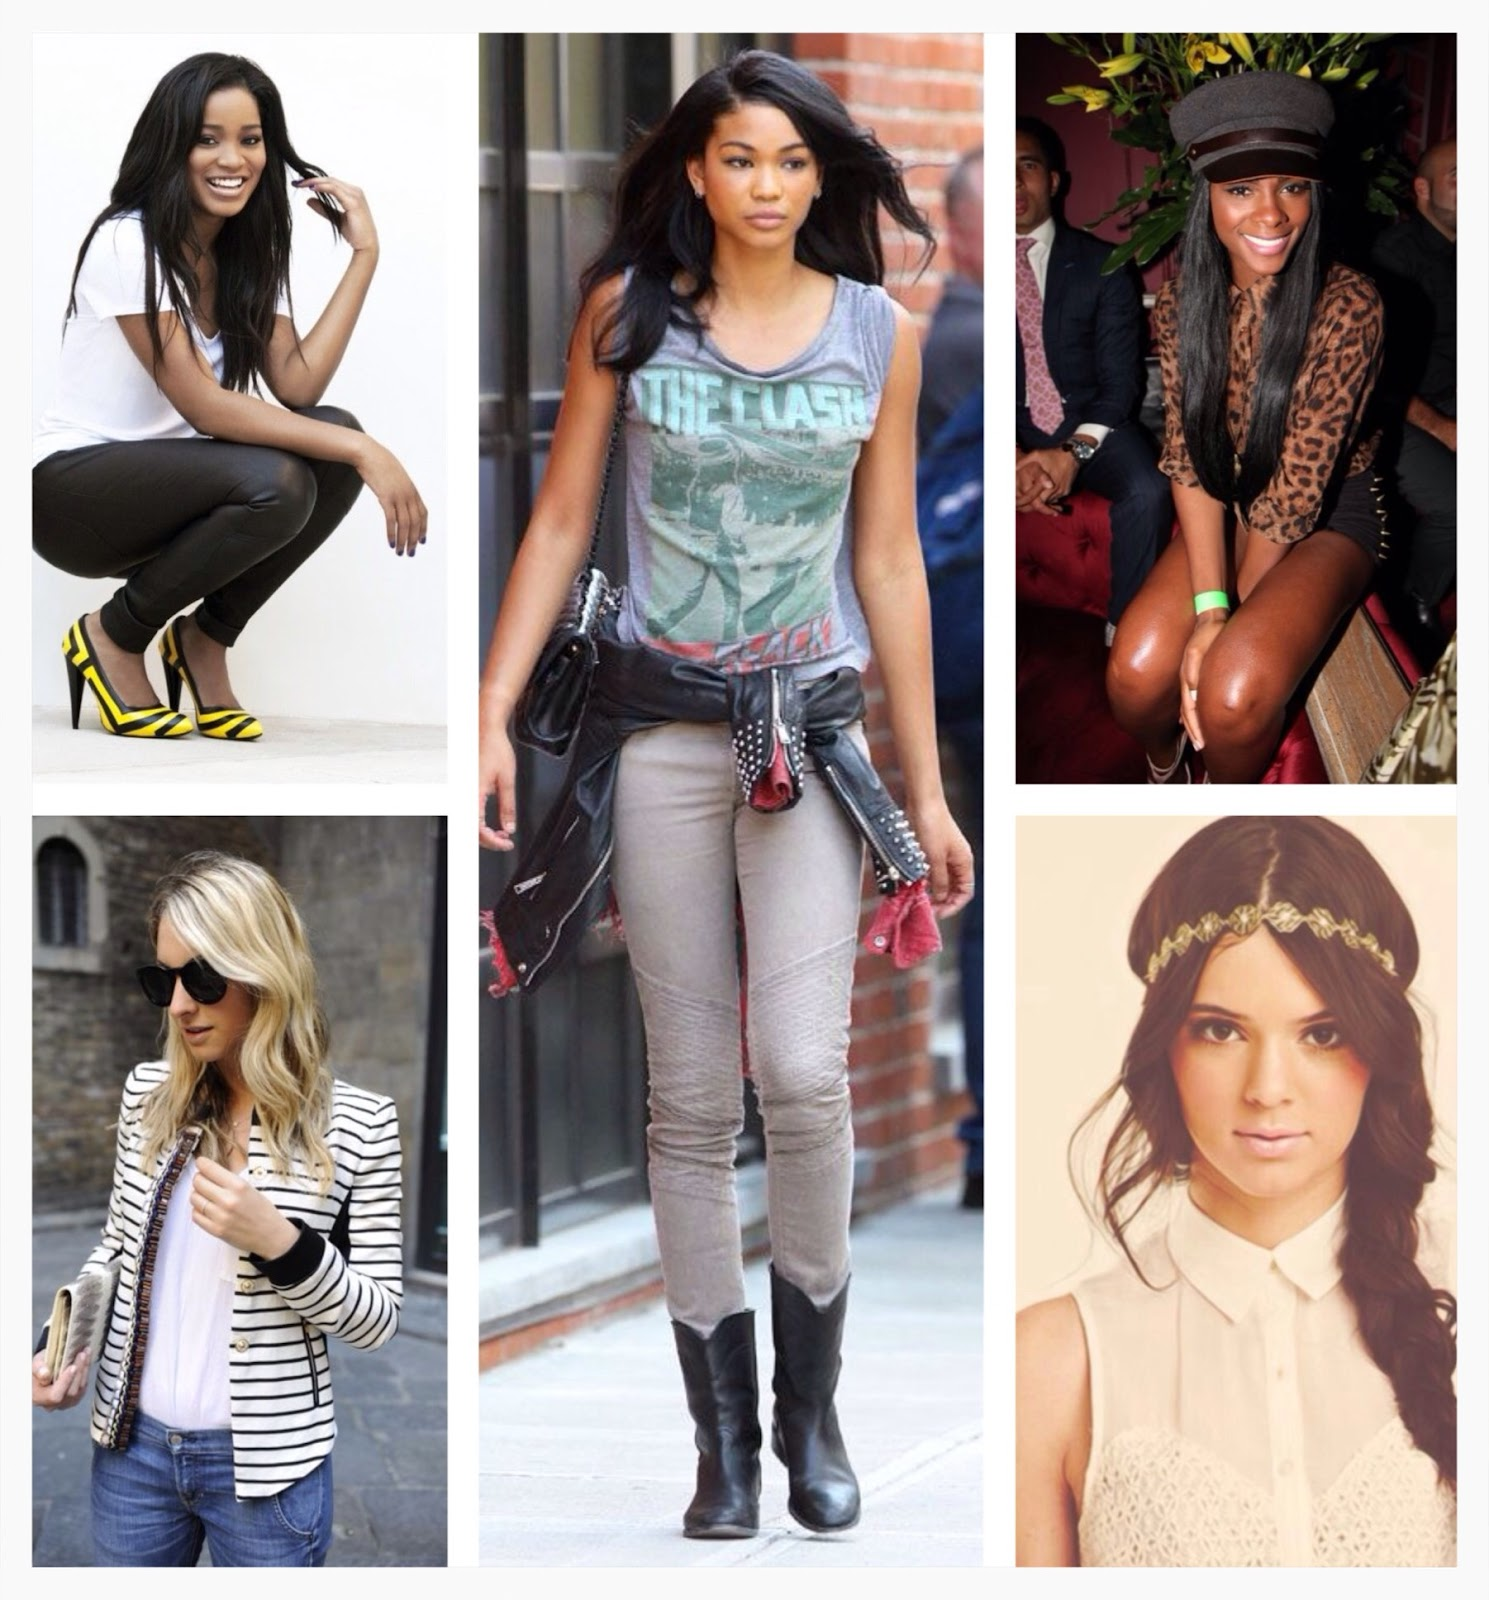 tika sumpter, kendall jenner pacsun, emily schuman, cupcakes and cashmere, keke palmer, chanel iman, vogue, super model